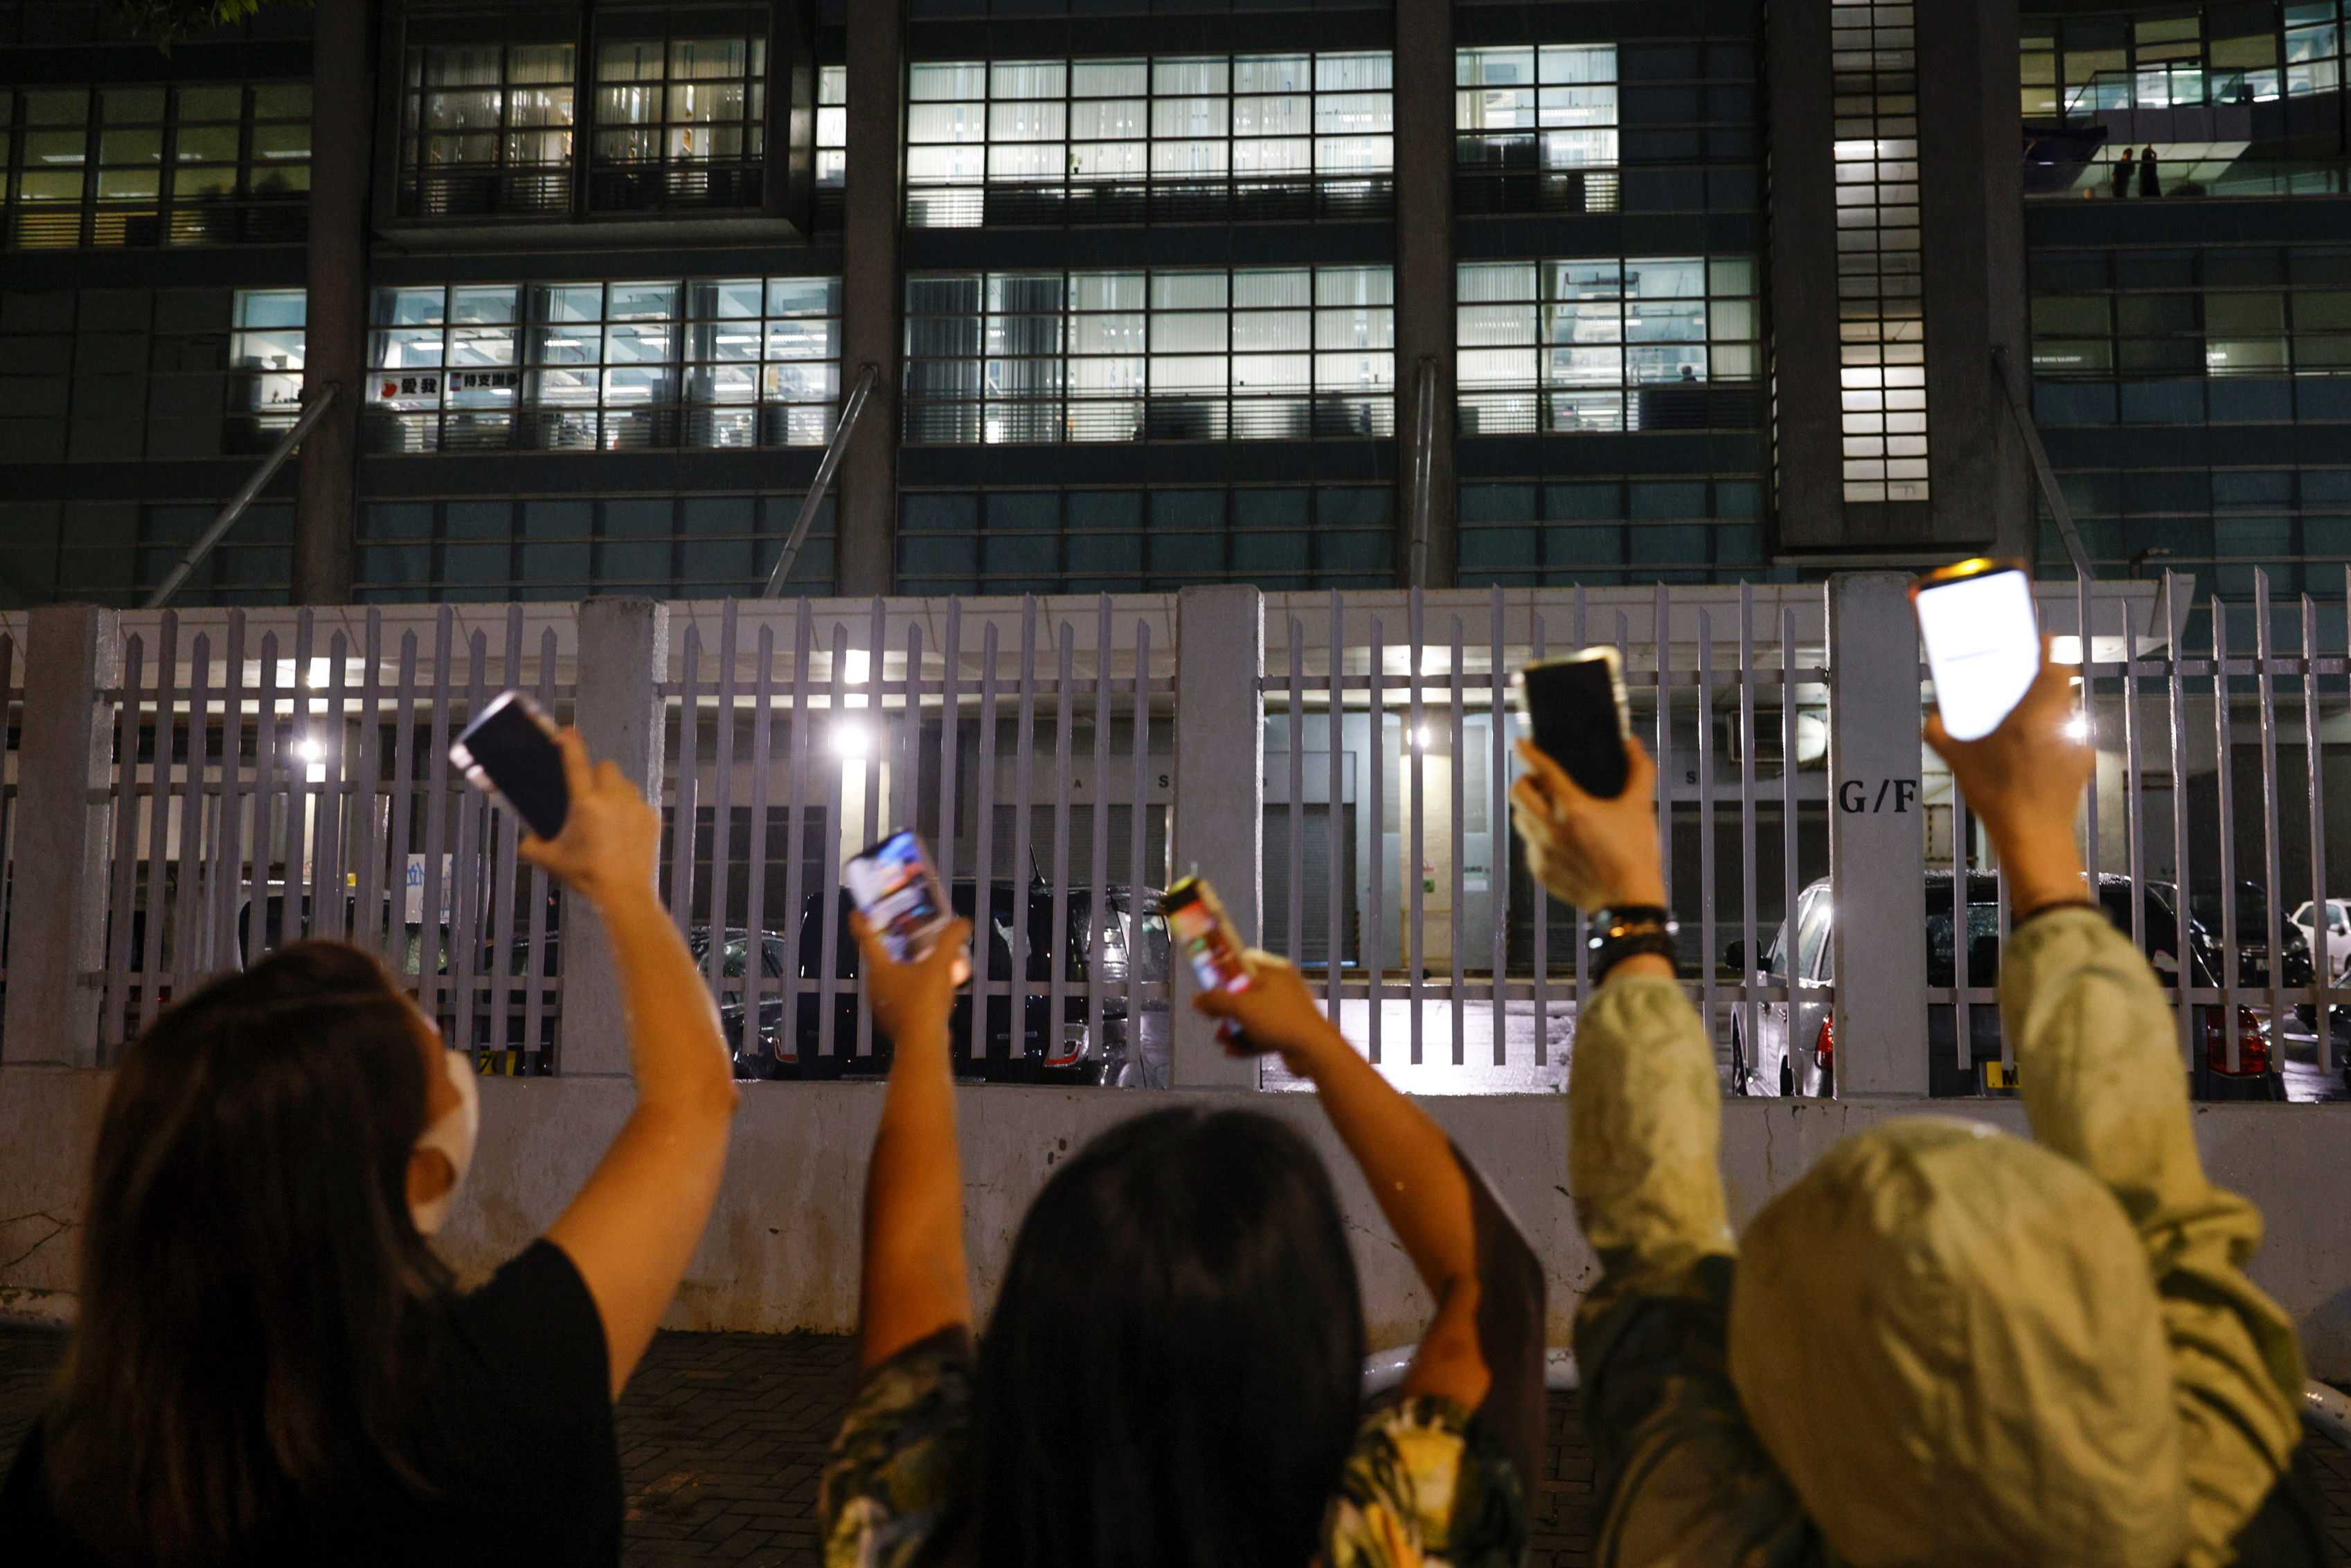 Supporters light torch lights from their phones outside the headquarters of the Apple Daily newspaper, and its publisher Next Digital, after announcement that the newspaper is folding its operations earlier, in Hong Kong, China June 23, 2021. REUTERS/Tyrone Siu